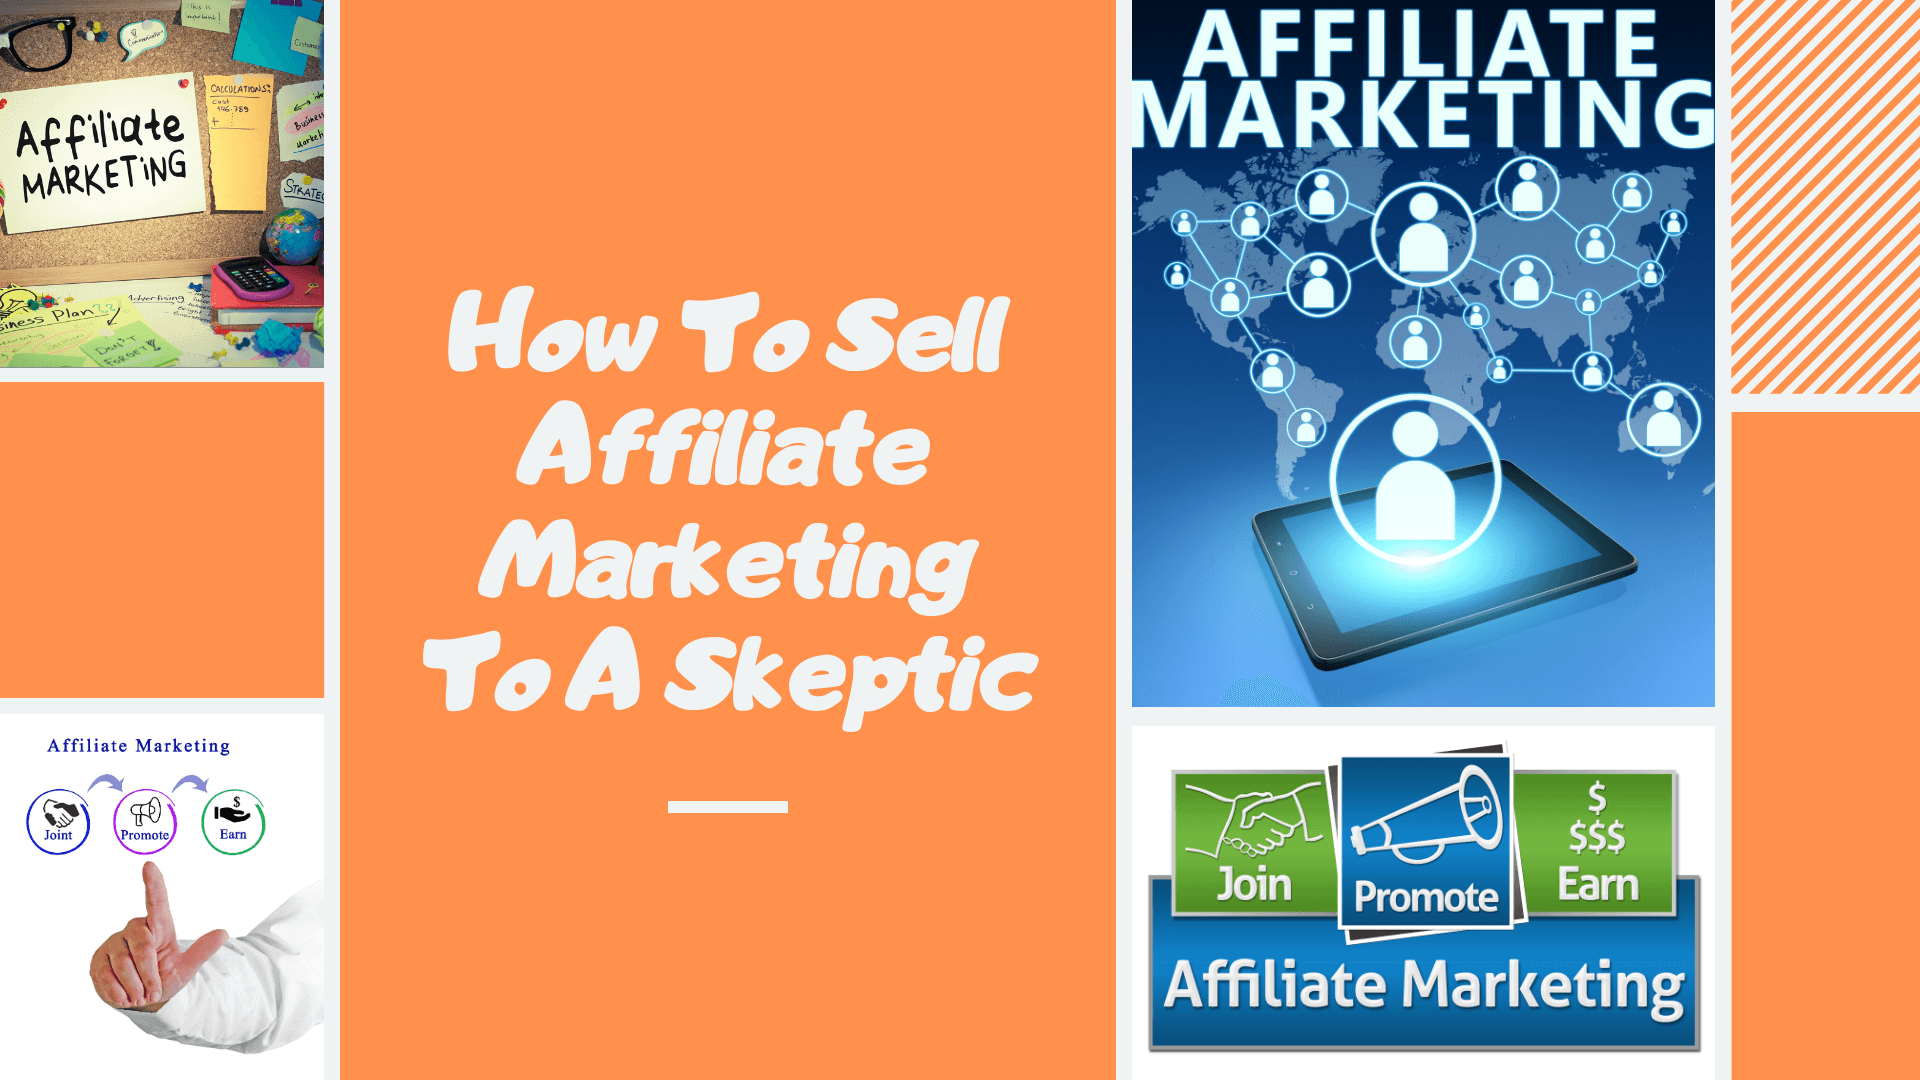 How To Sell Affiliate Marketing To A Skeptic